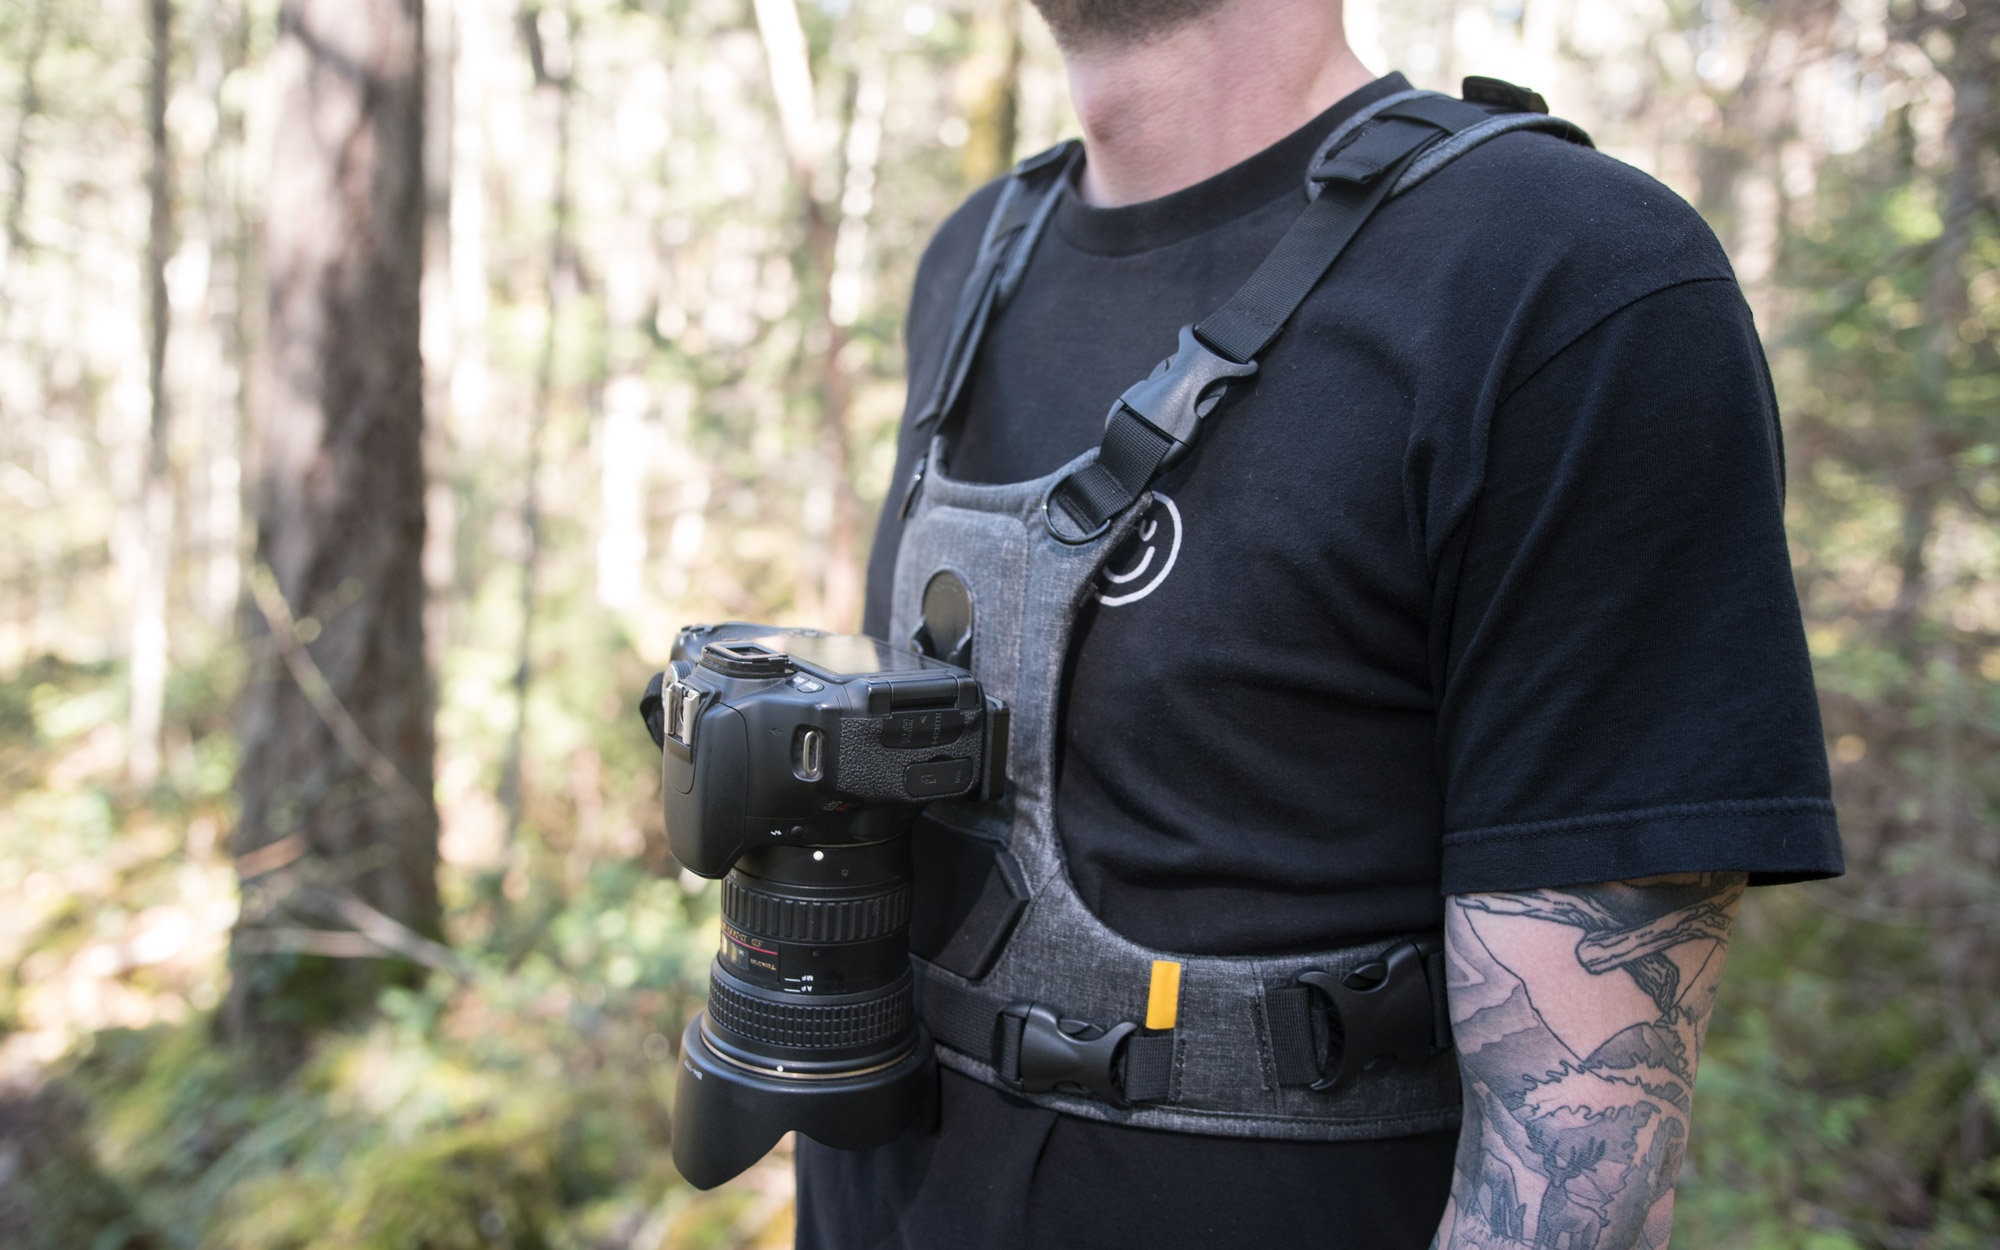 Cotton Carrier Camera Harness